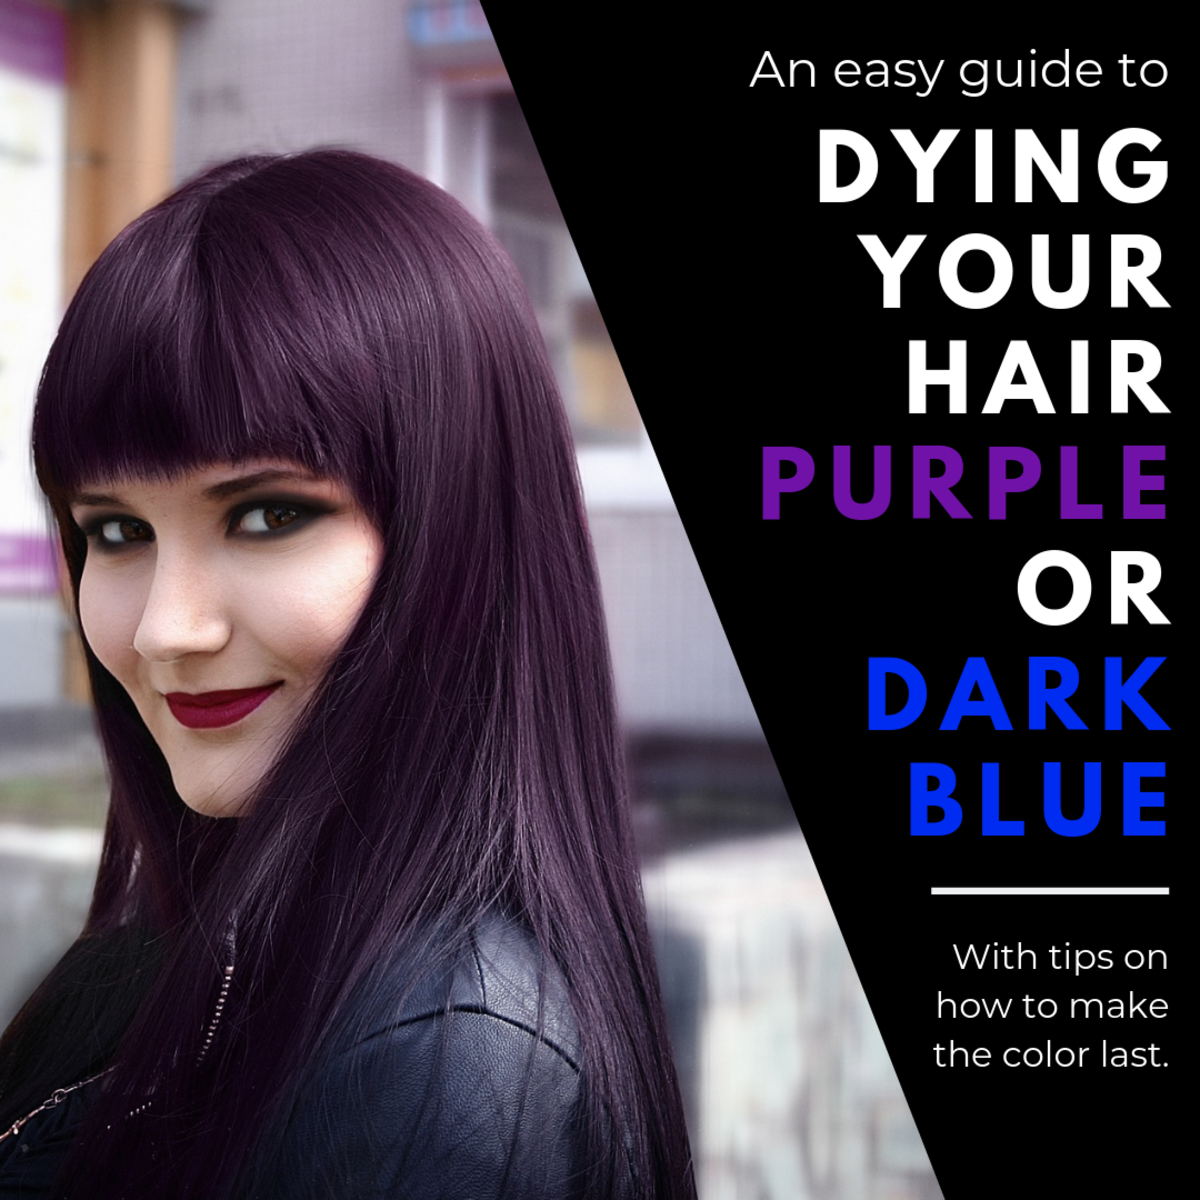 How to Dye Your Hair Dark Blue or Purple